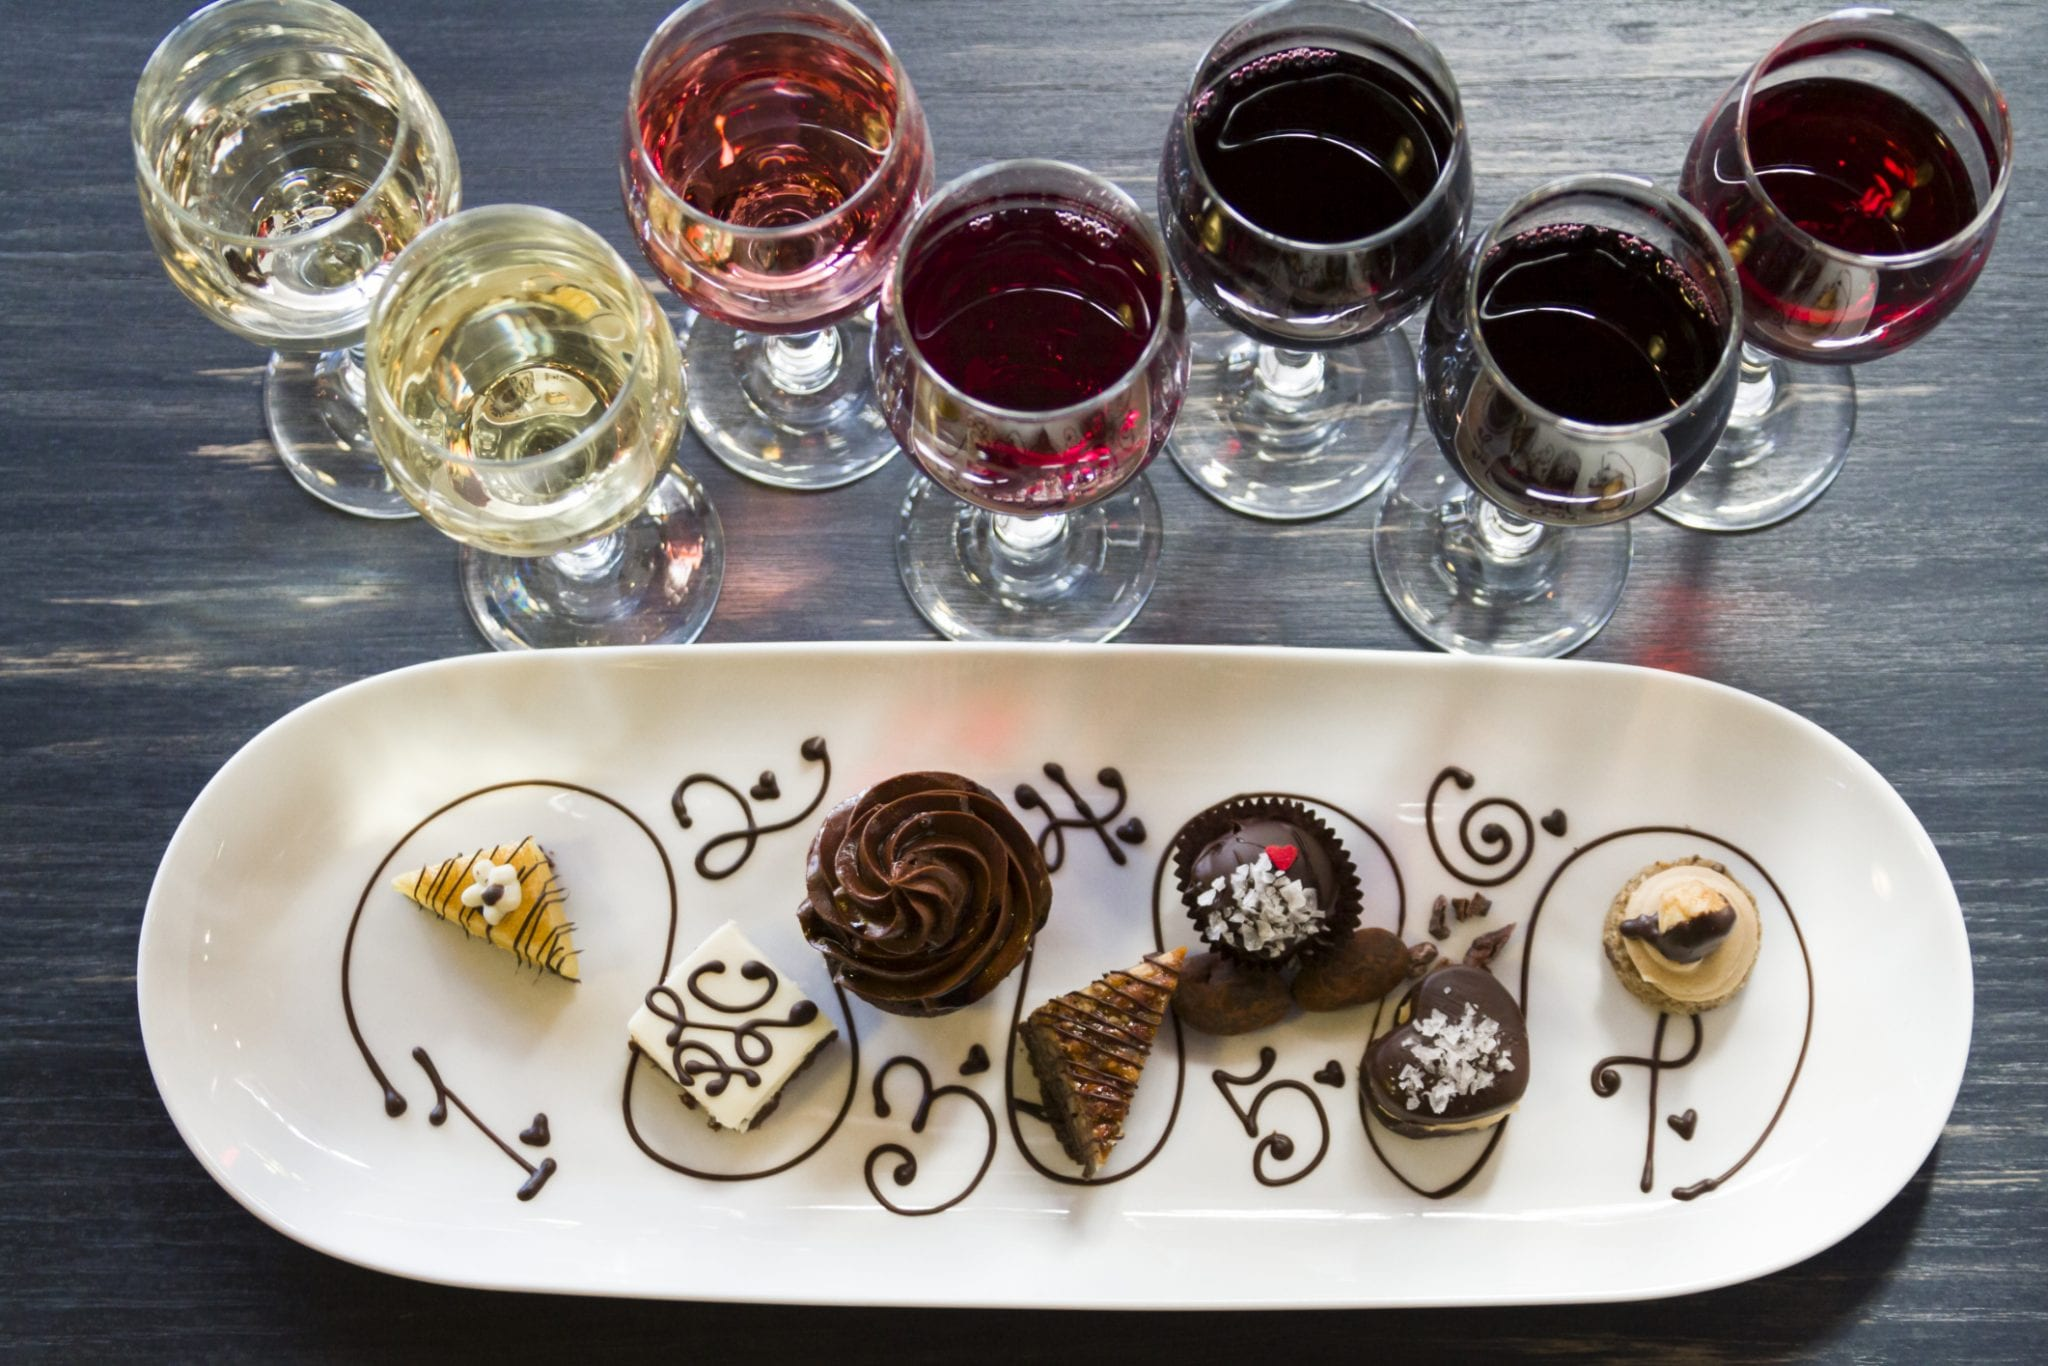 Sinfully Sweet: Dessert & Wine Pairing | Potomac Point Winery